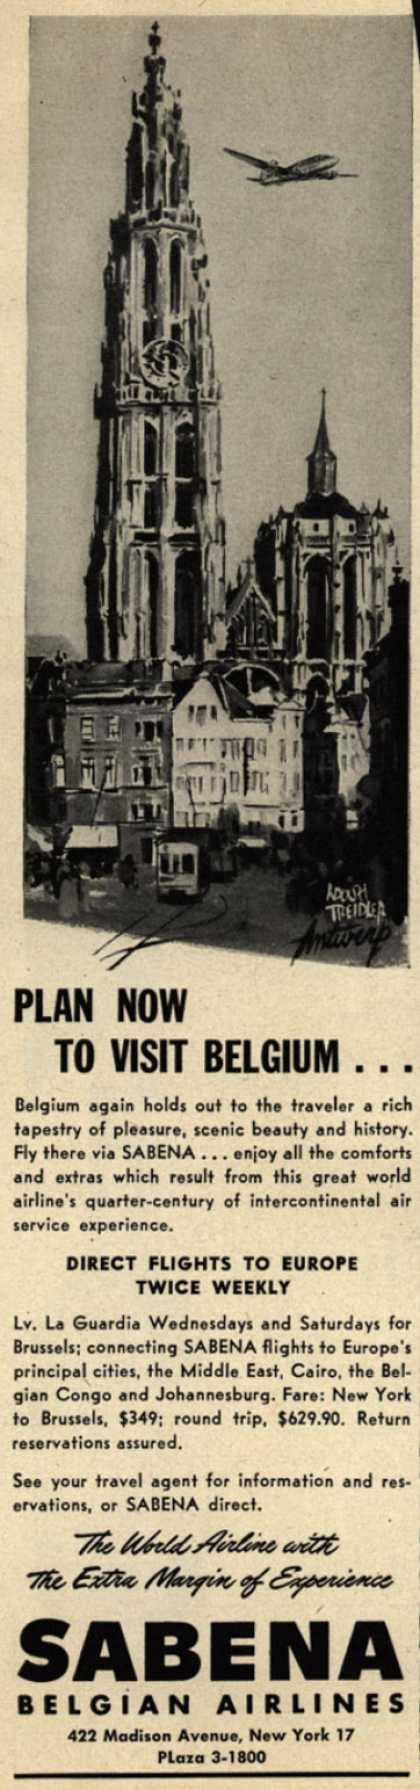 Sabena Belgian Airline's Belgium – Plan Now To Visit Belgium (1947)